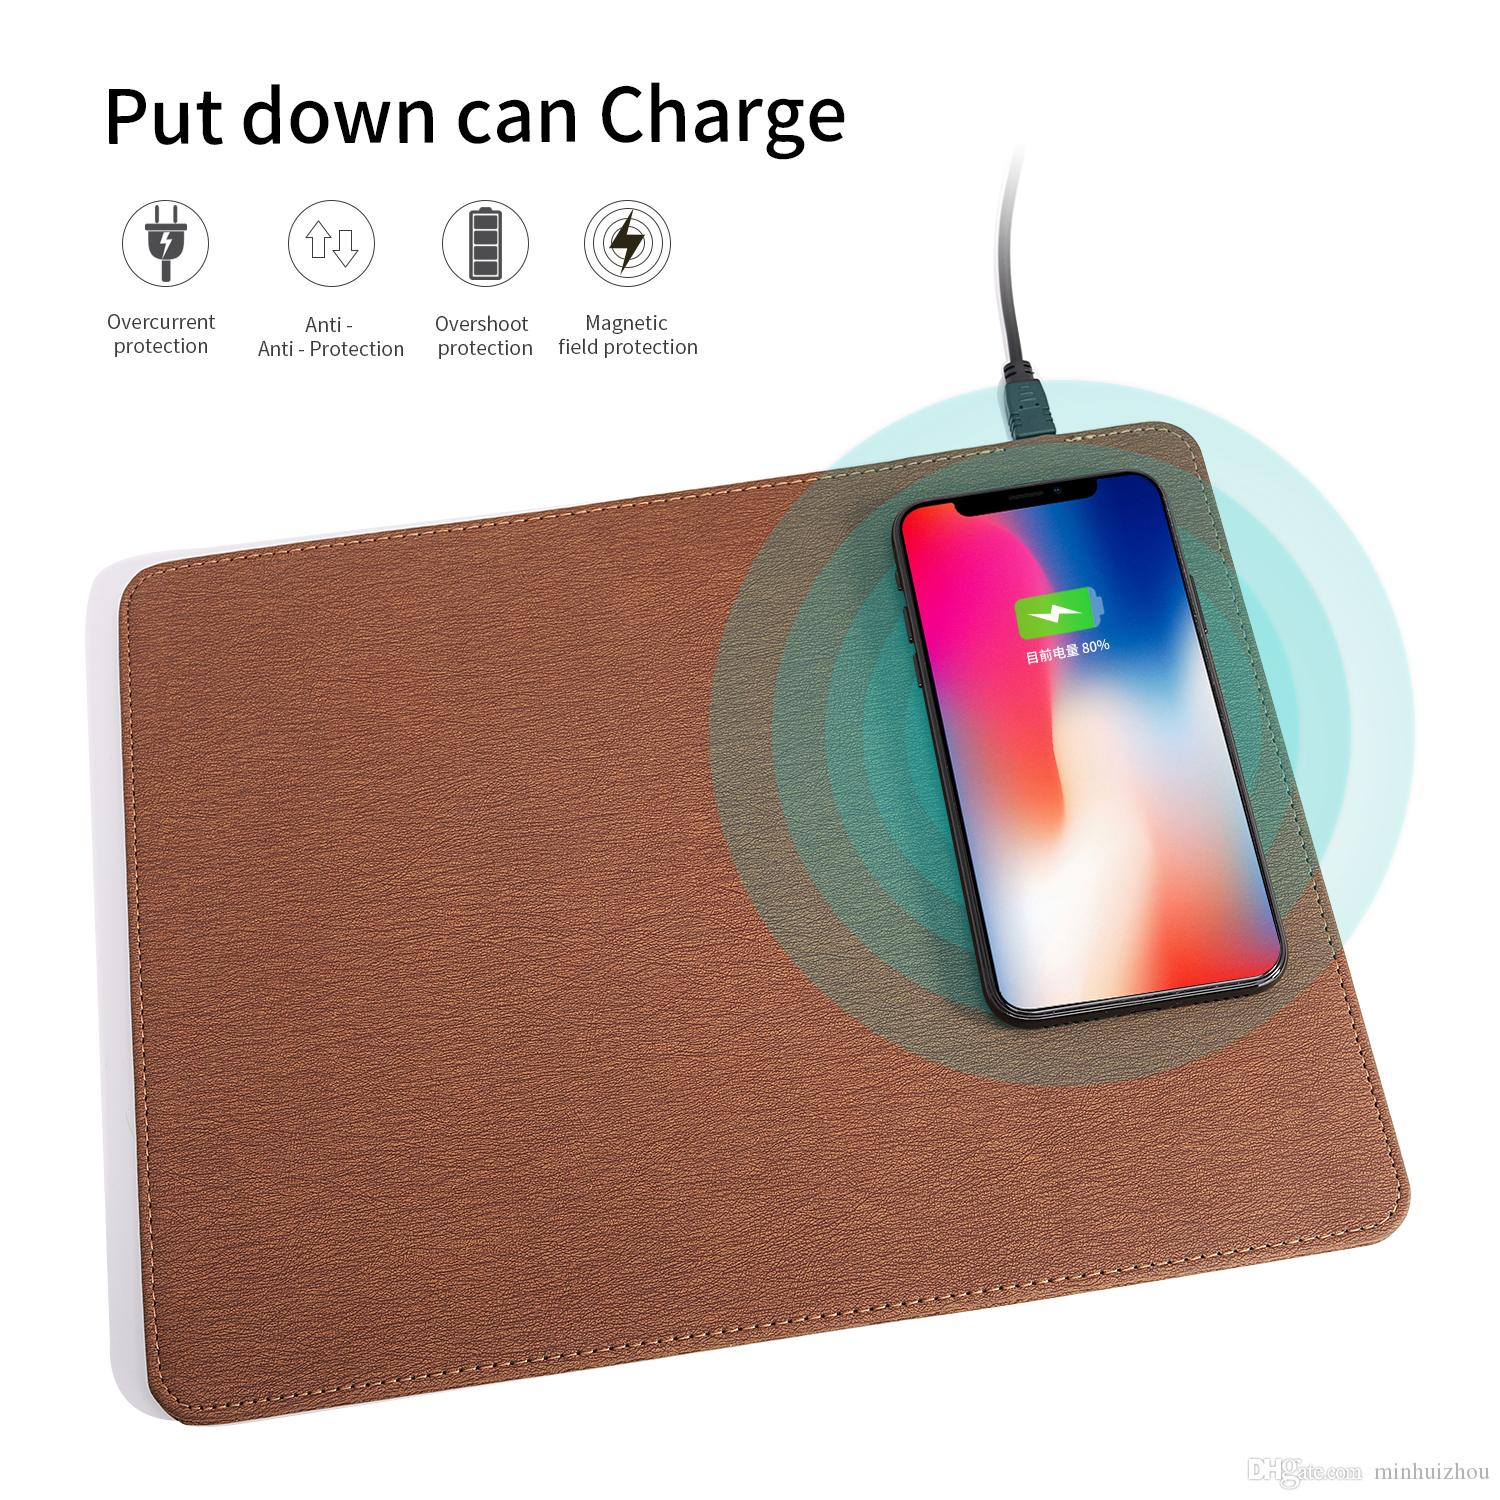 QI wireless charger mouse pad fast charging CE RoHS approved PU leather mouse charge pad universal for iPhone Samsung Qi-enabled cell phone